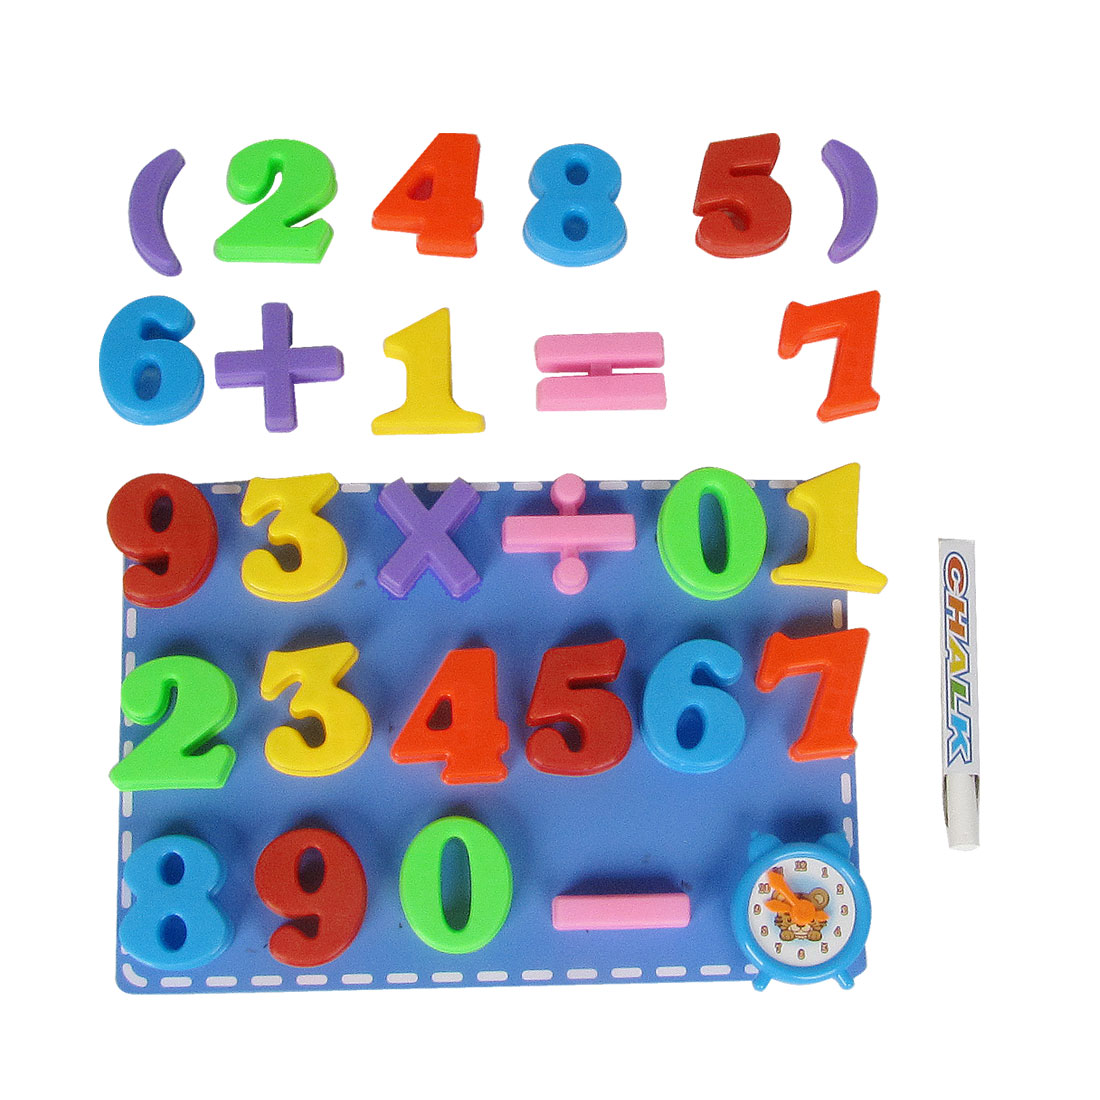 Colorful Numbers Free Cliparts That You Can Download To You Computer